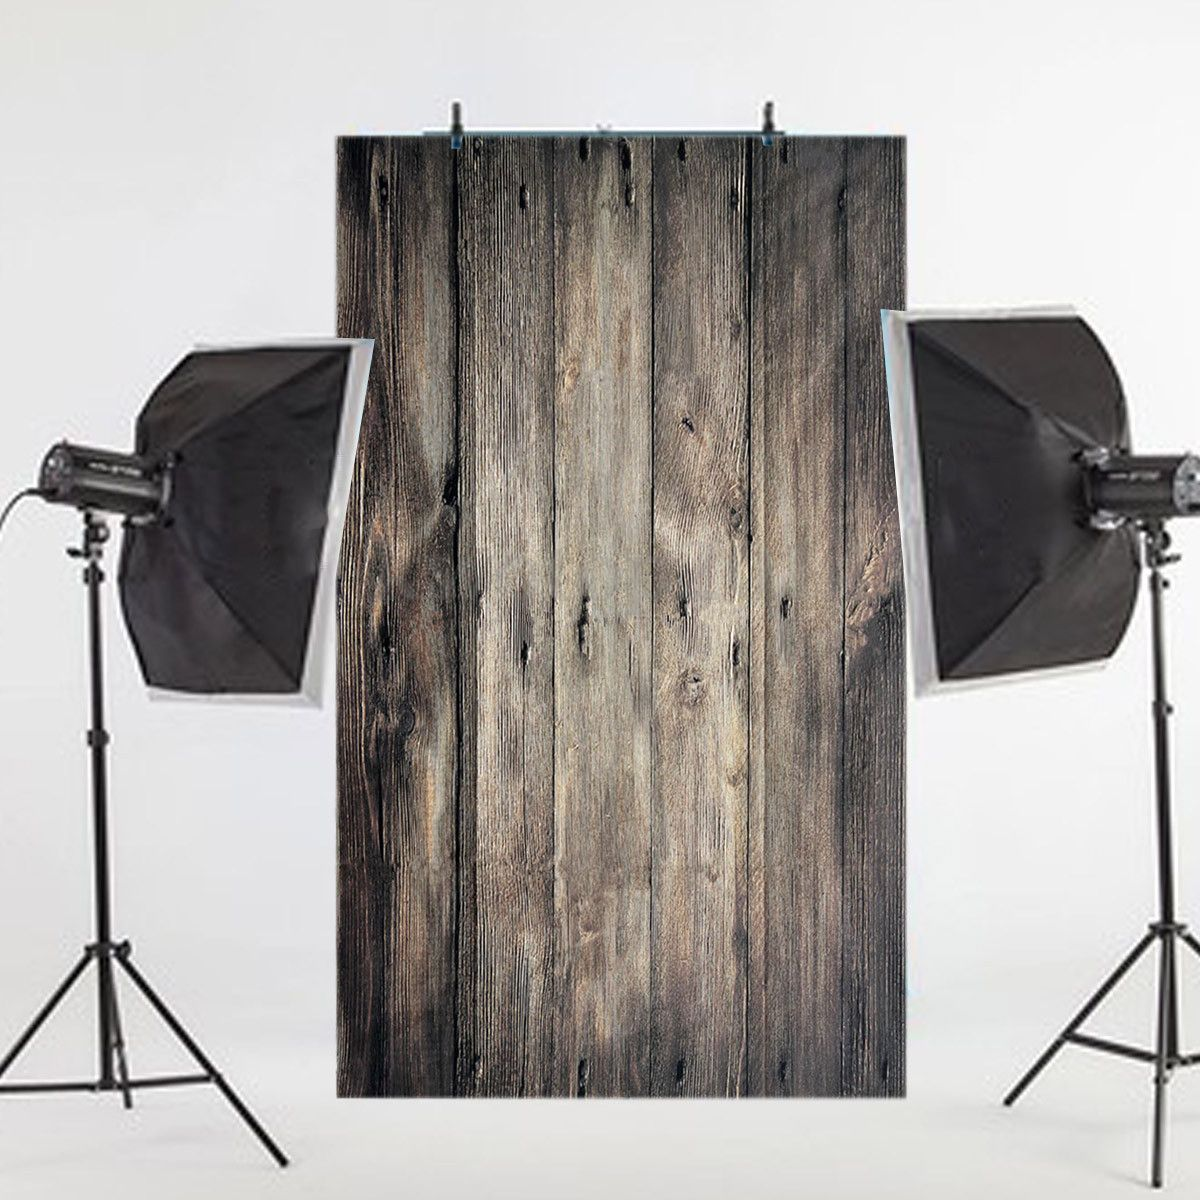 New 3x5FT Vintage Photography Backdrops Wood Vintage Photography Backdrop Backgrounds Studio Wood Background Fotografia allen joy photographic background cute cartoon fish wood backdrop photography without stand